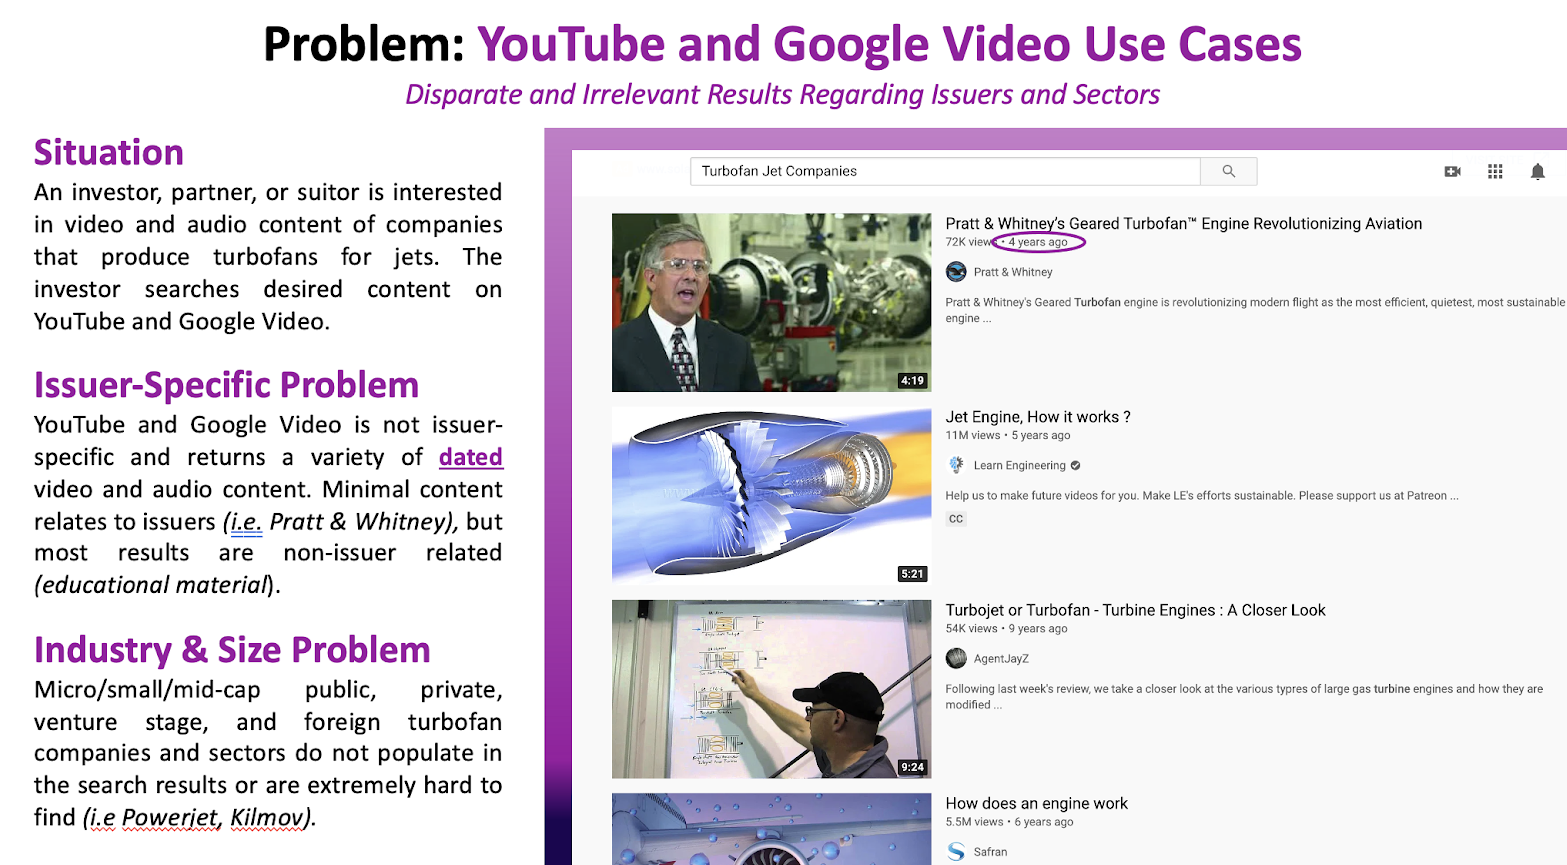 YouTube and Google Video Use Cases